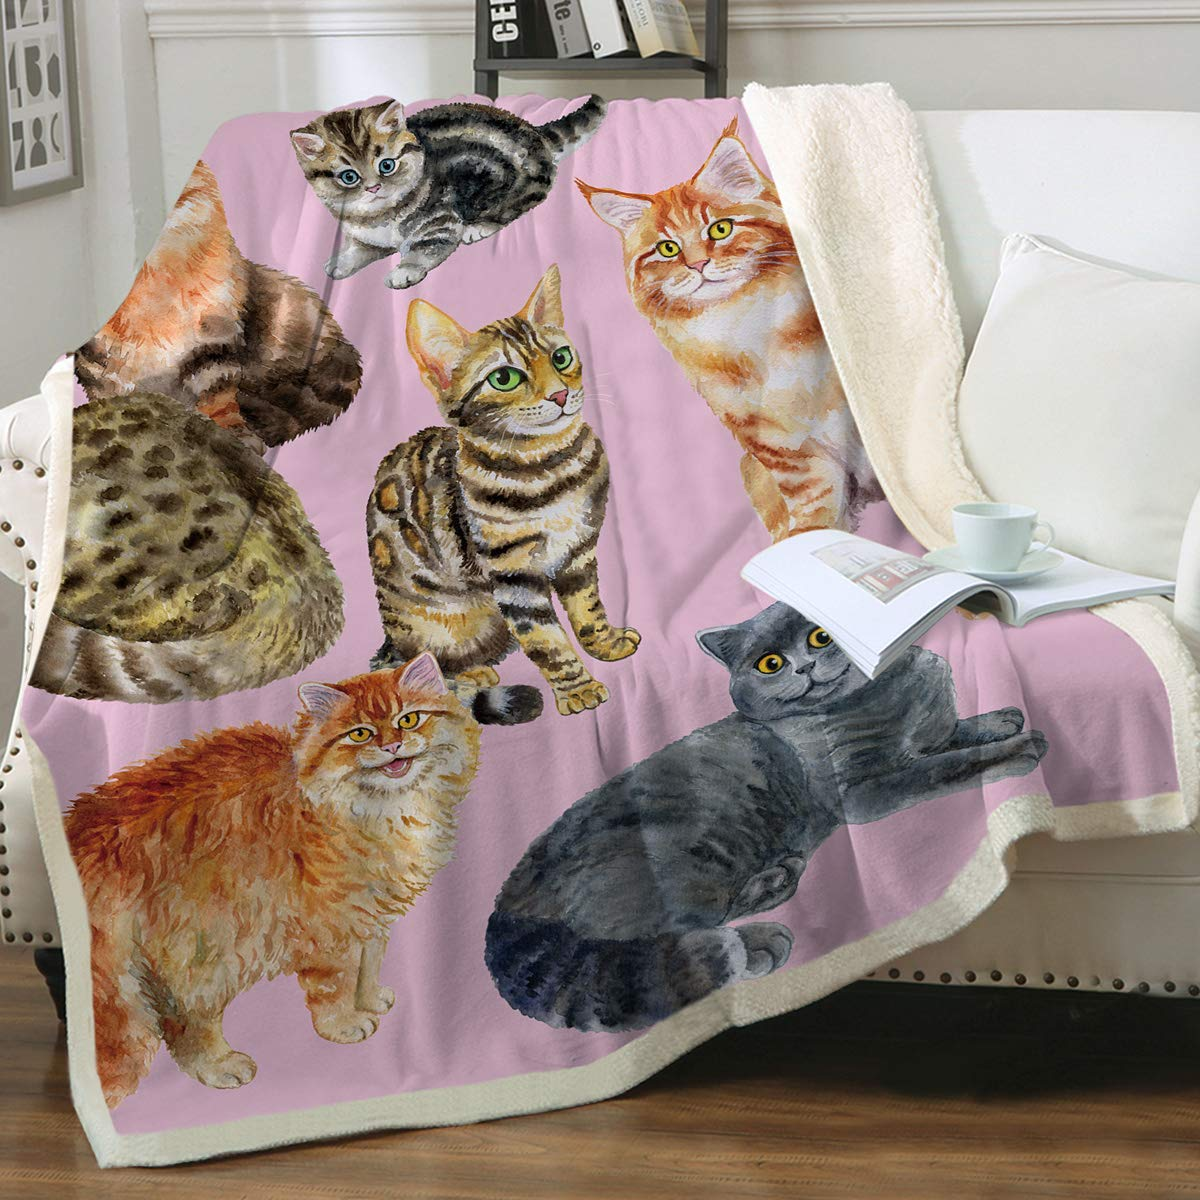 """Sleepwish Watercolor Cat Blankets for Twin Beds, Pink, Girls Adults Women 3D Whimsical Animals Sherpa Fleece Throw Blanket for Couch, Super Soft Warm and Comfy Cat Lover Gifts (60"""" X 80"""")"""